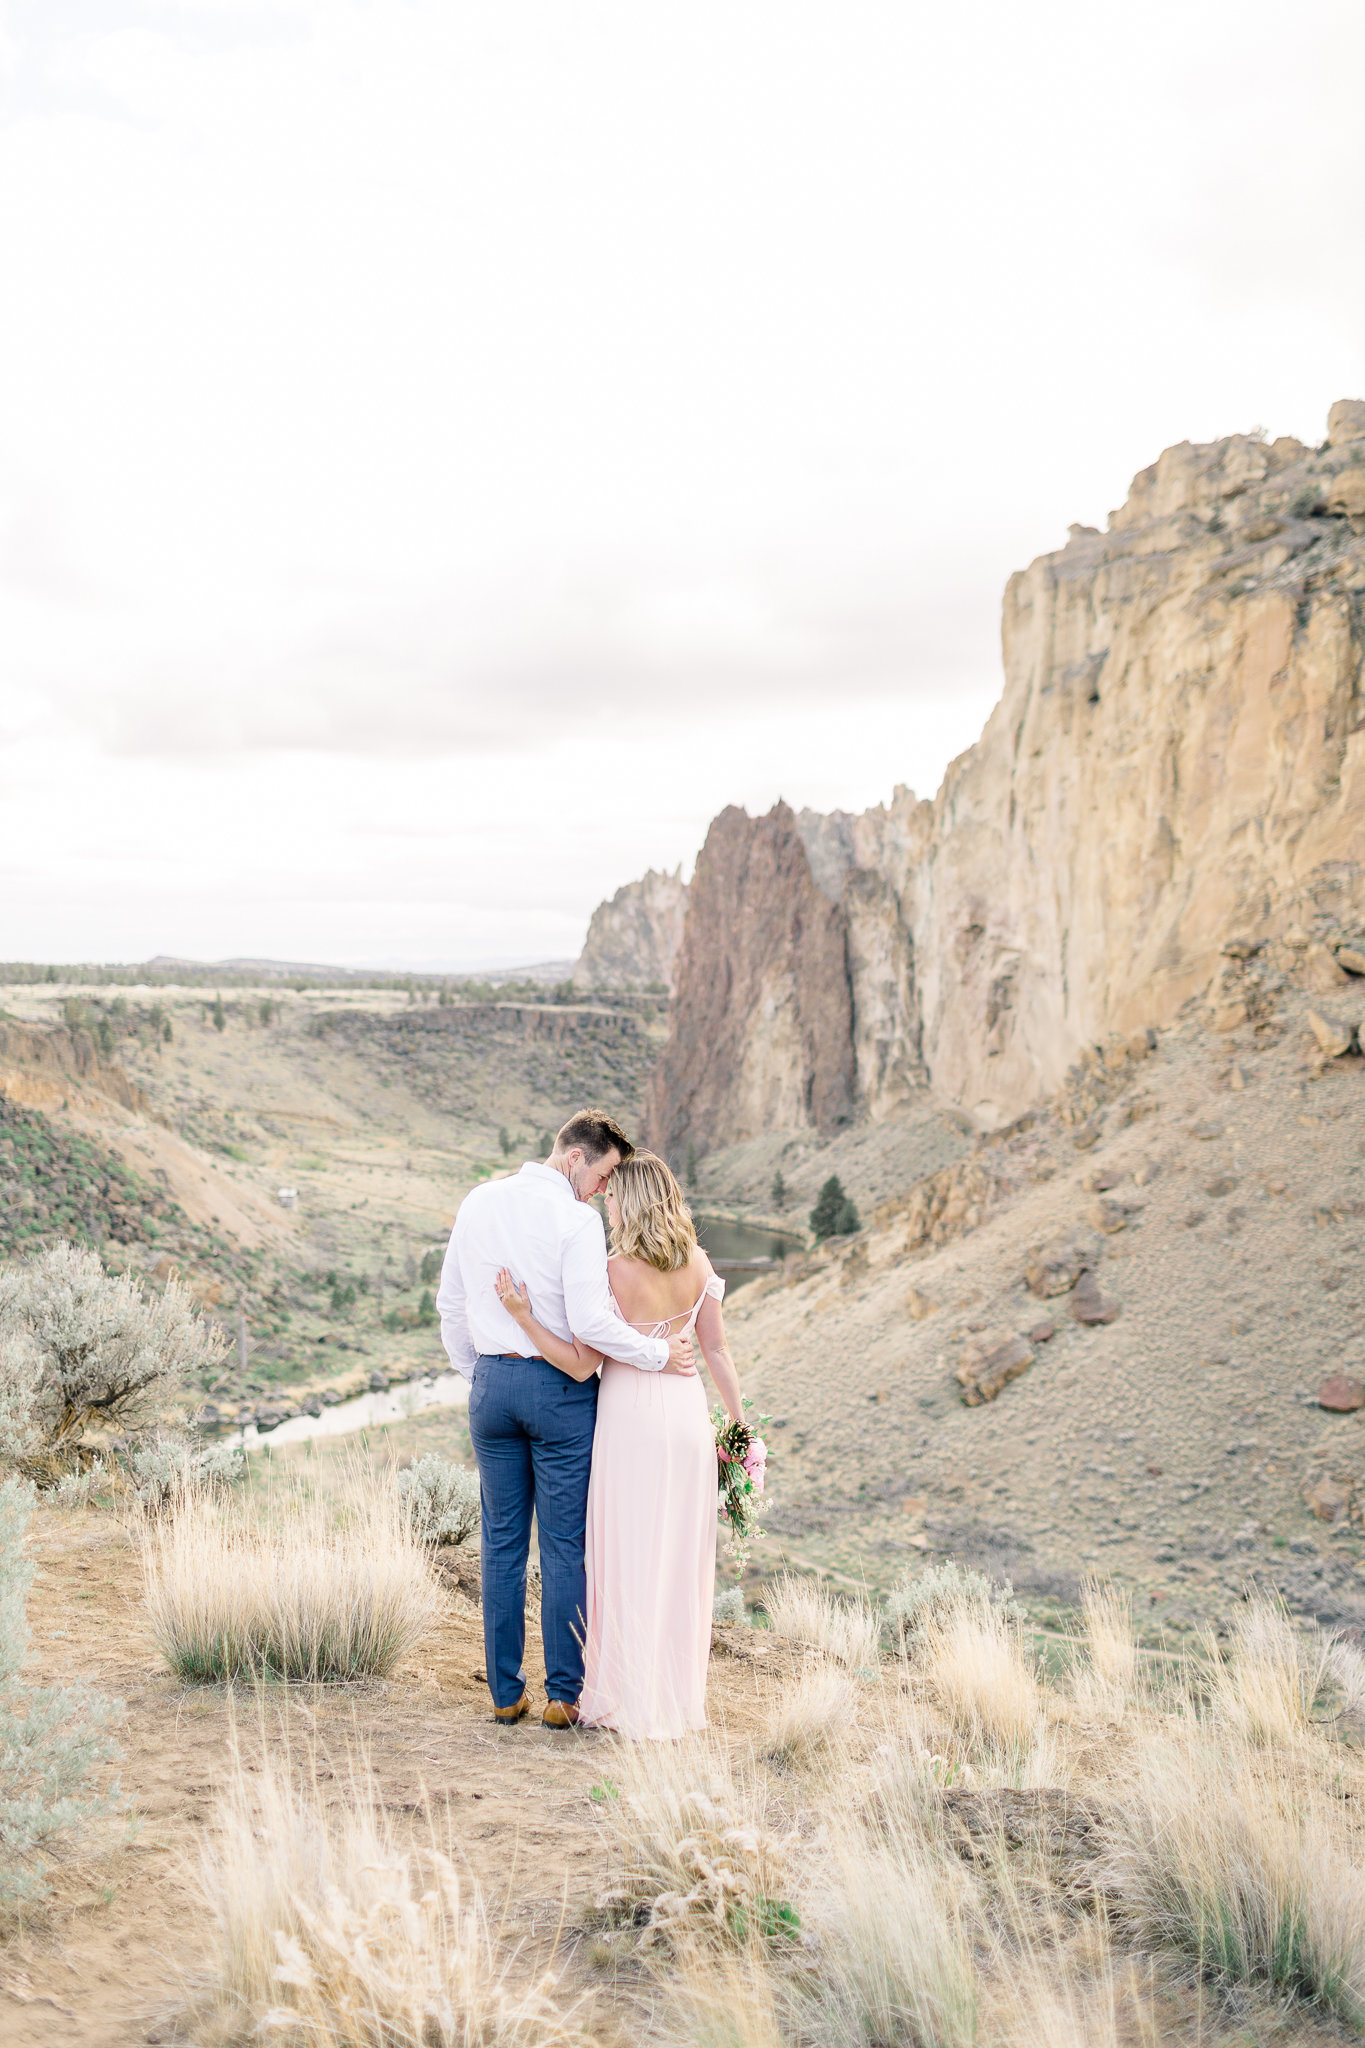 photographe-seance-anniversaire-de-mariage-smith-rock-state-park-oregon-lisa-renault-photographie-wedding-anniversary-session-photographer-26